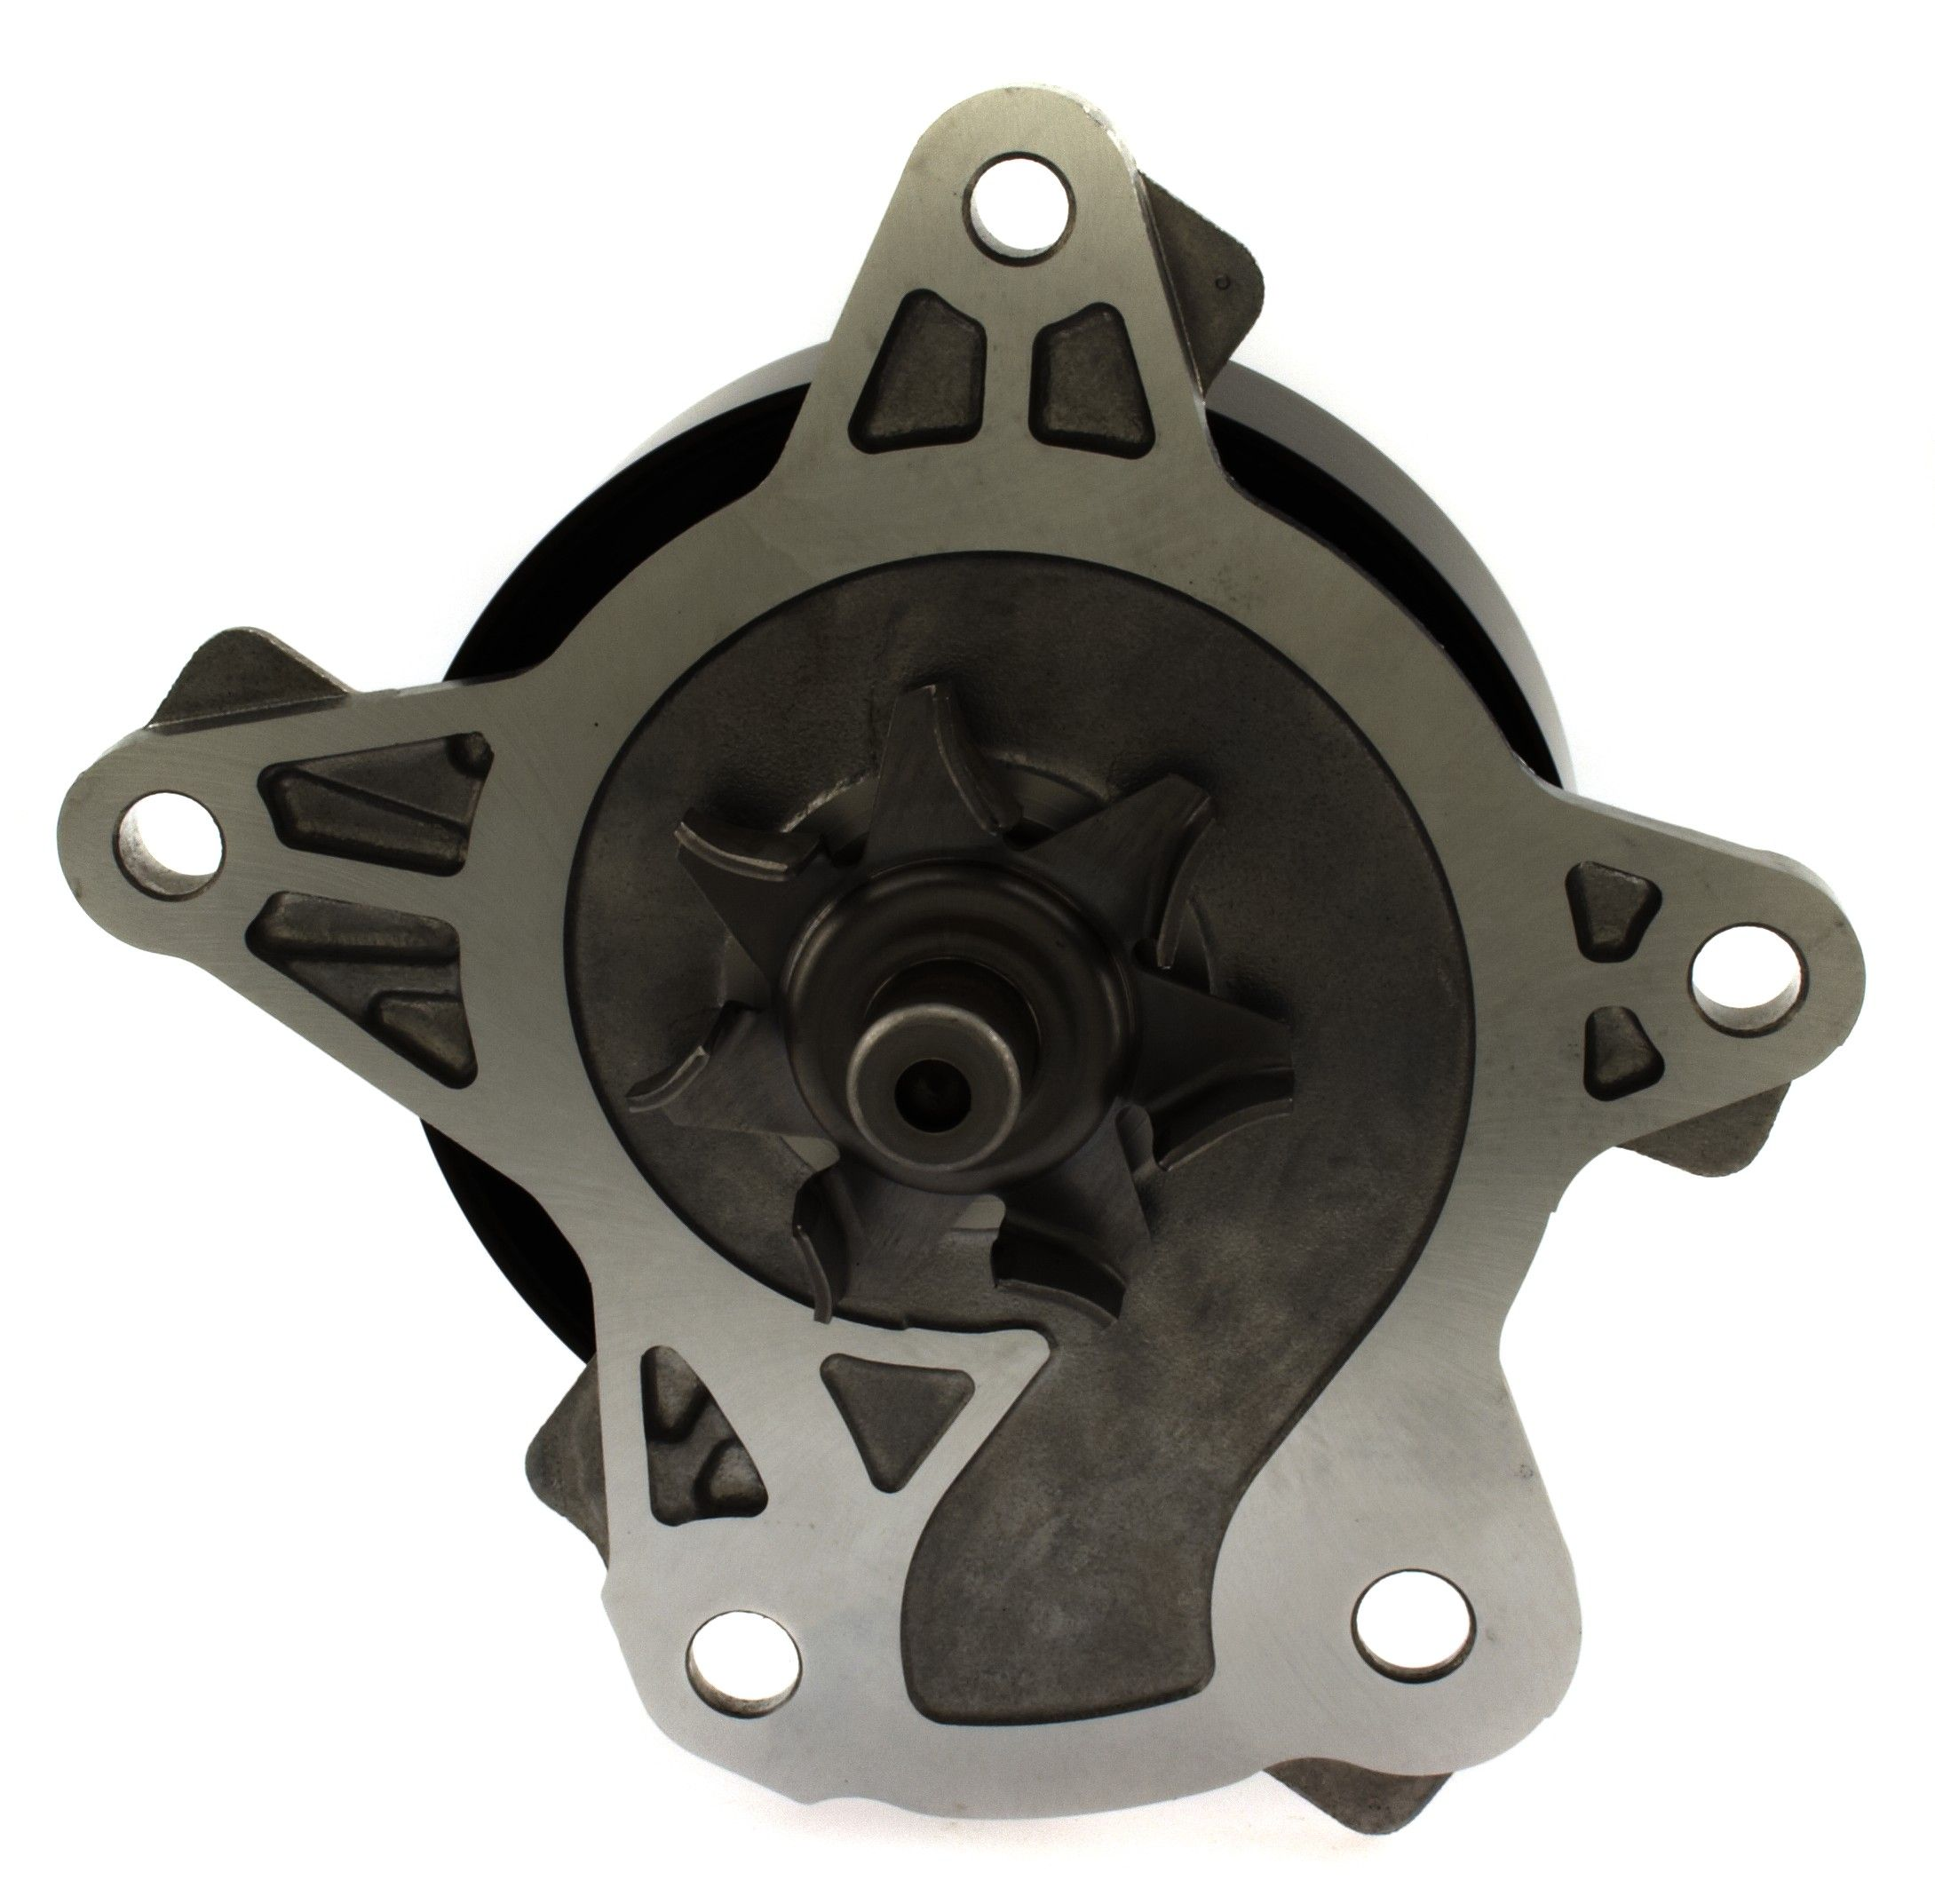 Scion Xd Engine Water Pump Replacement Aisin Airtex Beck 2009 Xb Diagram 2008 4 Cyl 18l Wpt 140